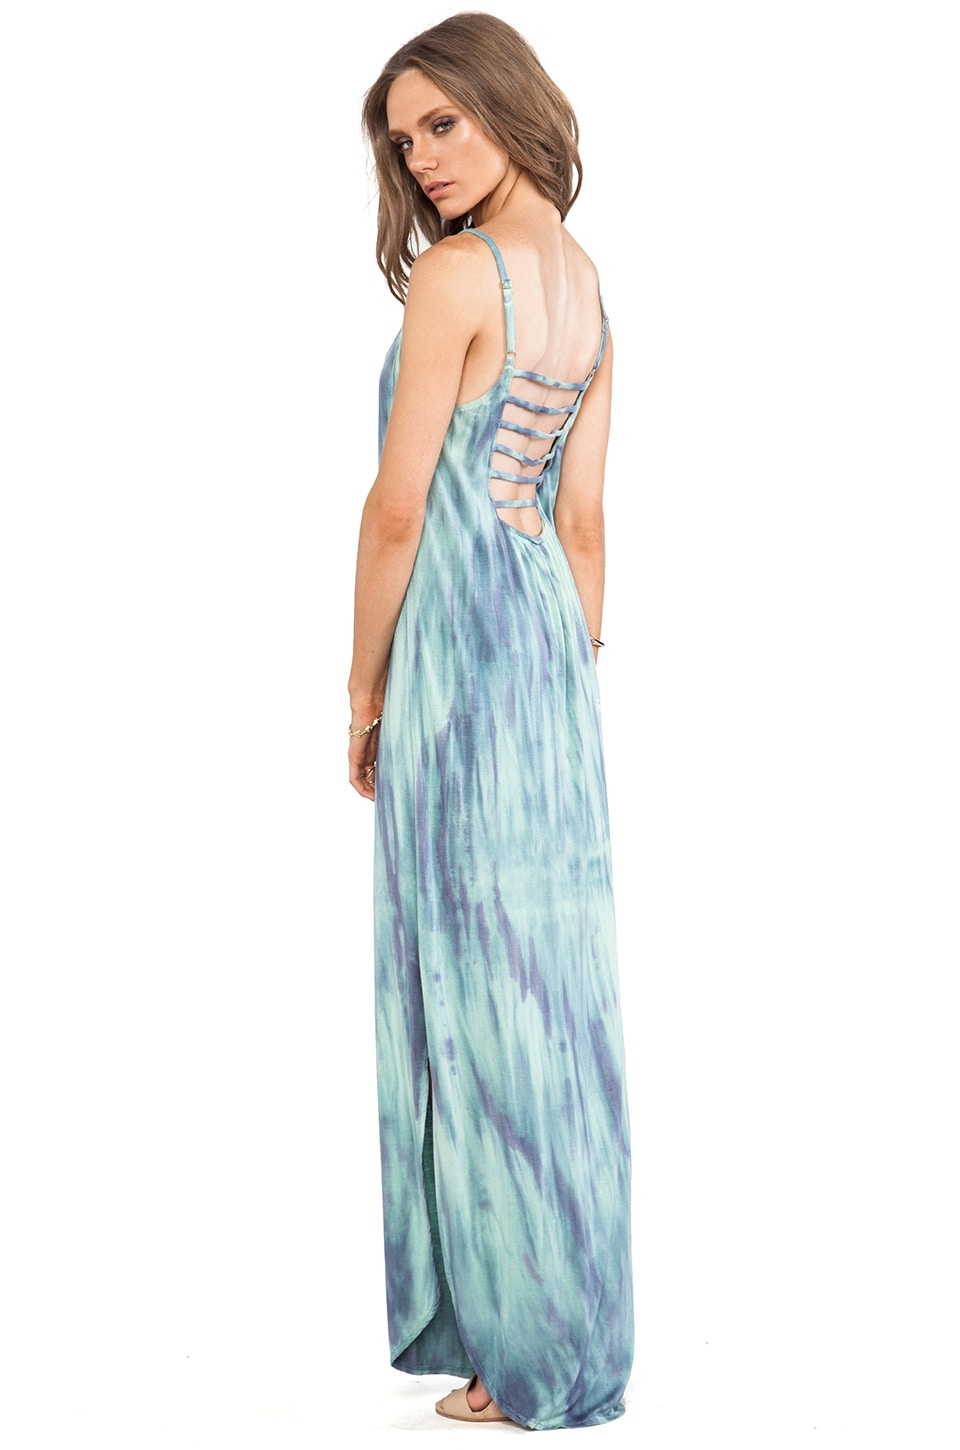 Gypsy 05 Scoop Back Dress in Multi Blue